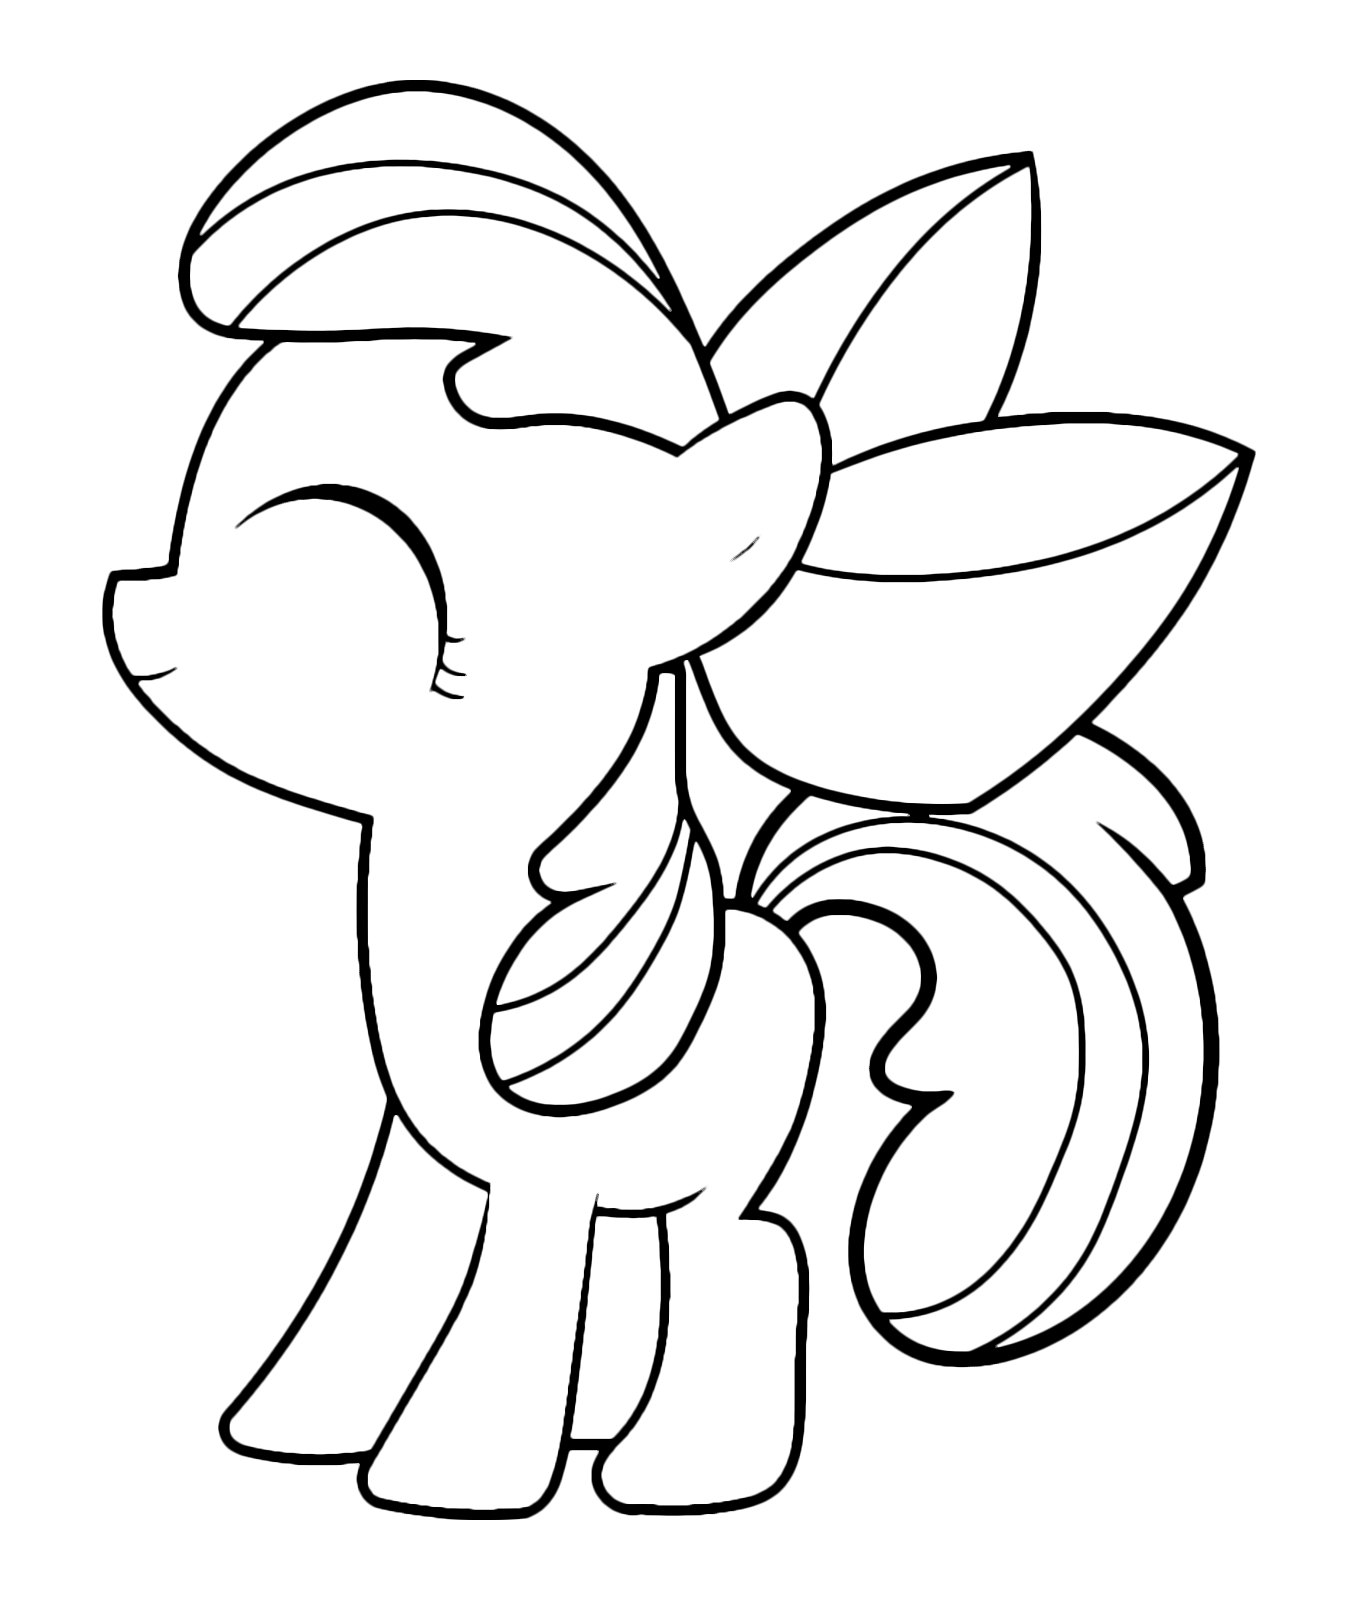 my little pony apple bloom coloring page free printable - 721×900